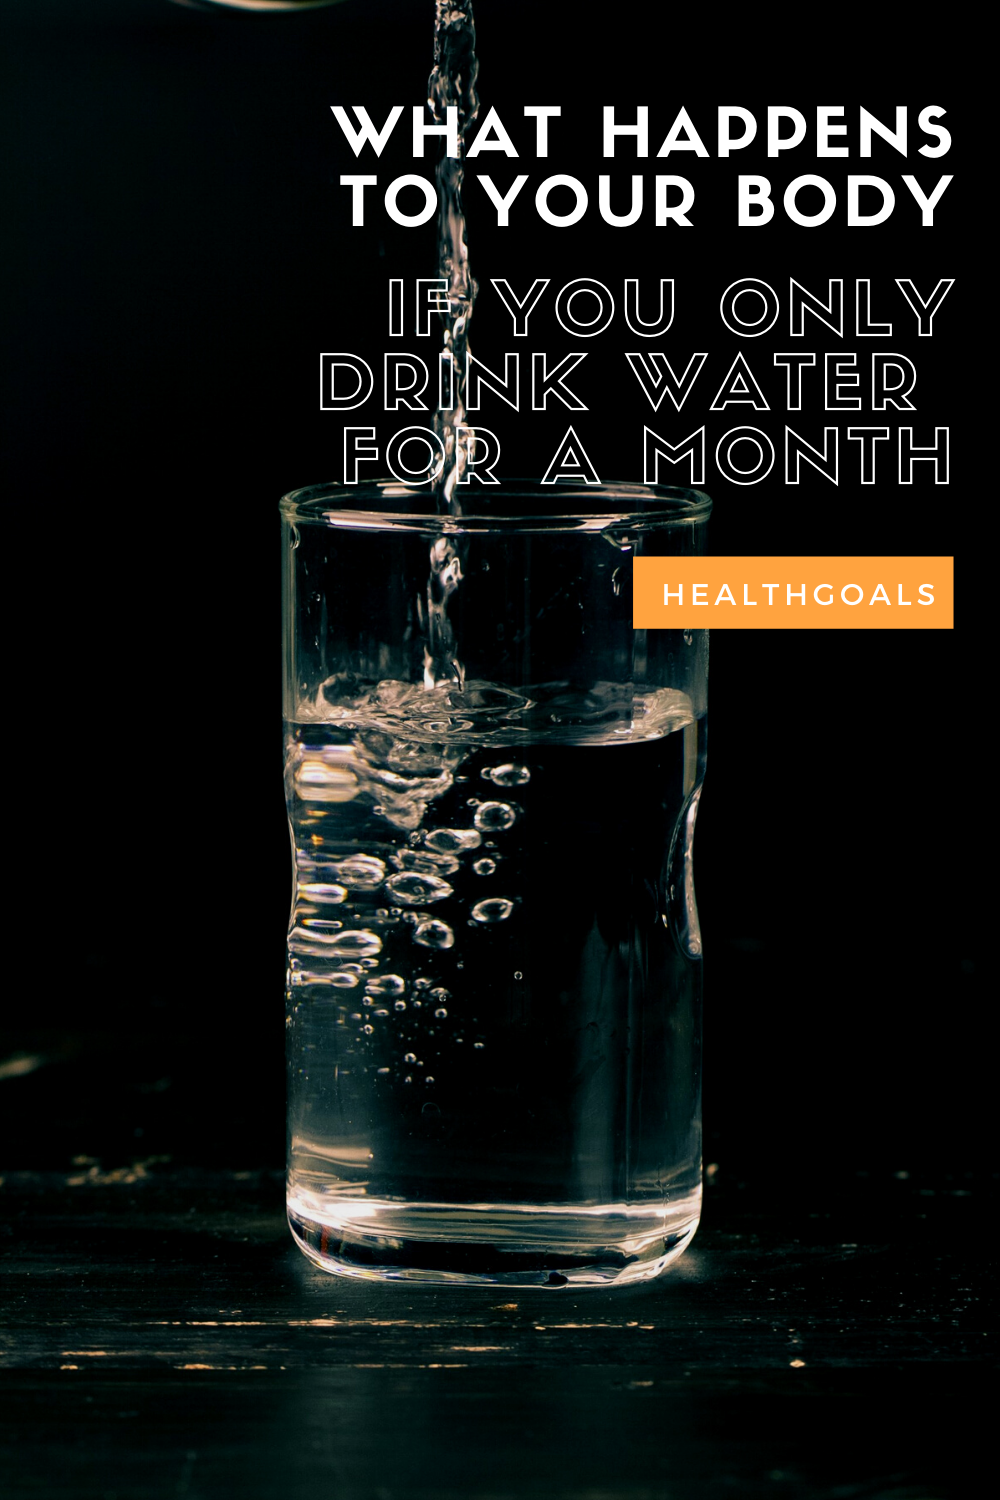 What happens to your body if you only drink water for a month